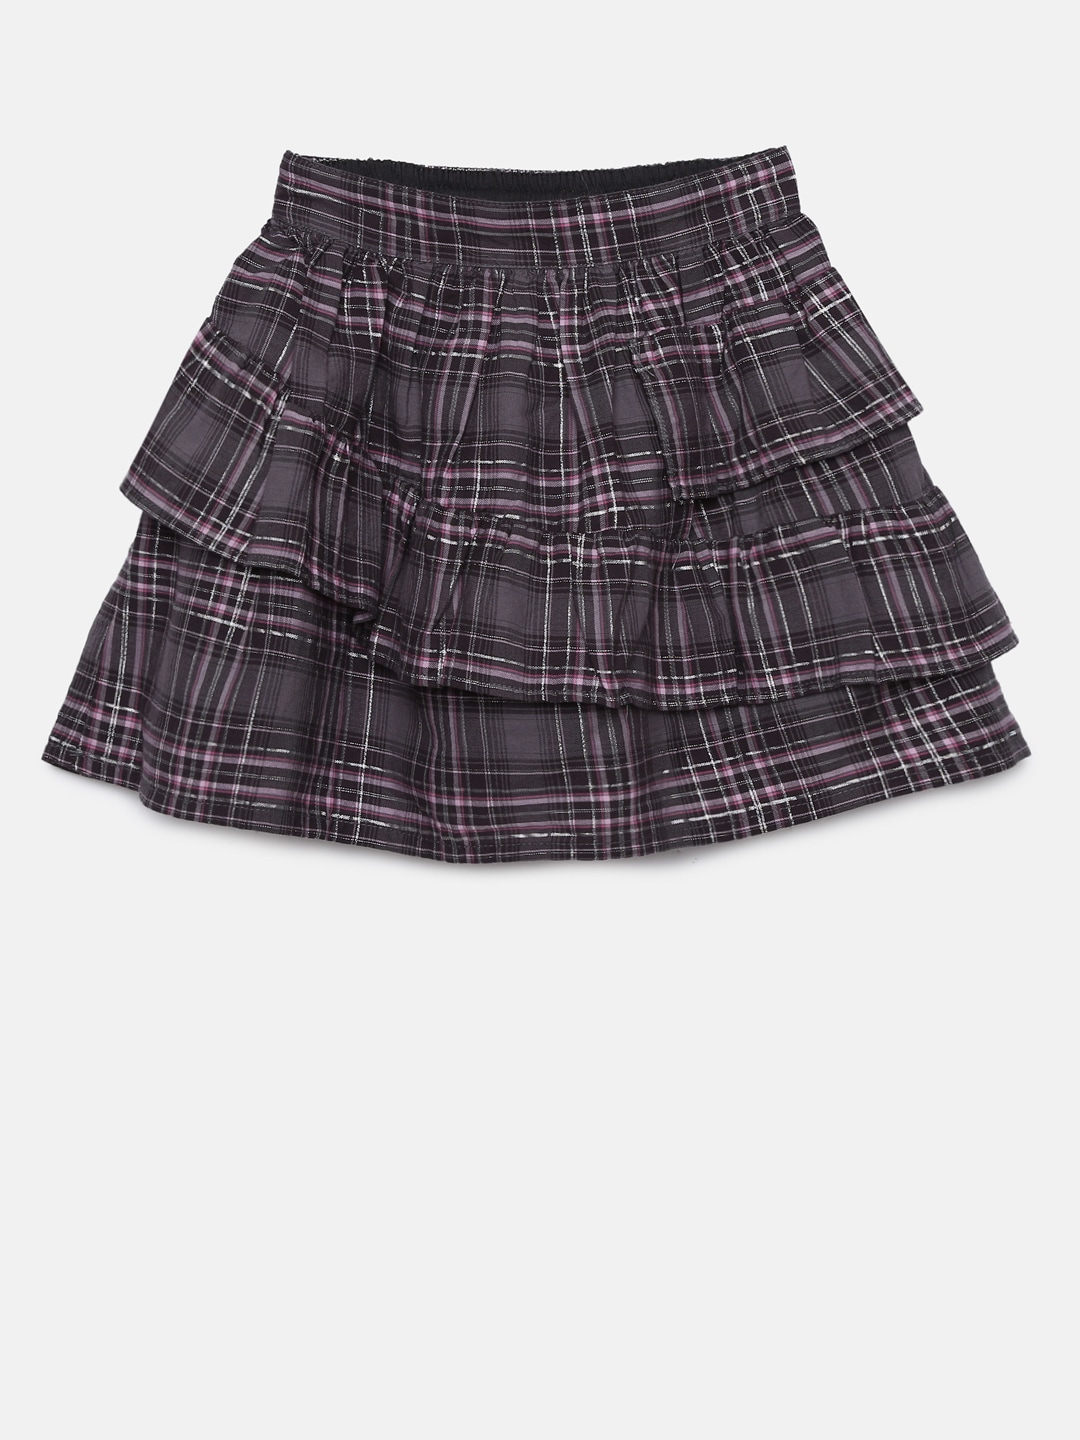 7e1dd7e170 Layered Skirts - Buy Layered Skirts online in India